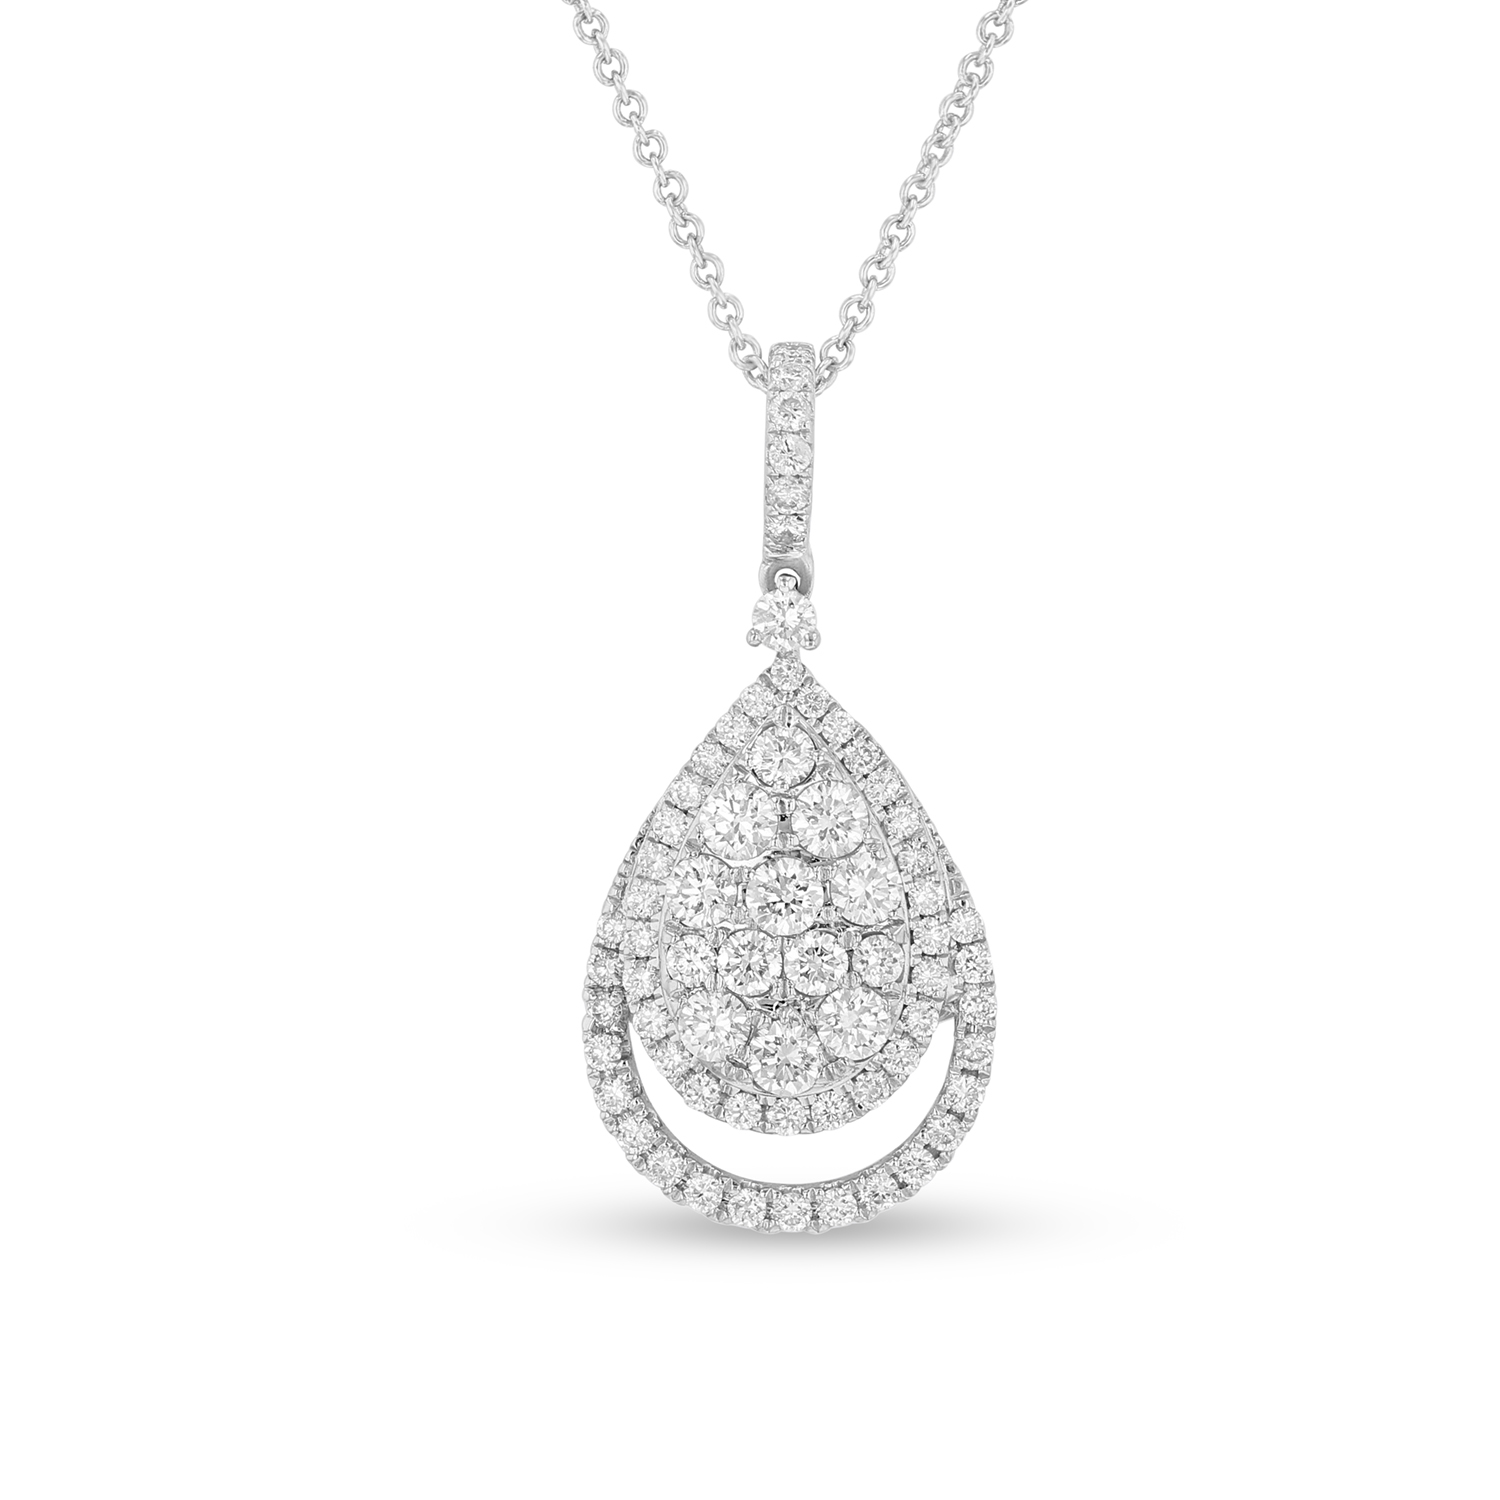 View 0.93ctw Diamond Pear Shaped Cluster Pendant in 18k White Gold